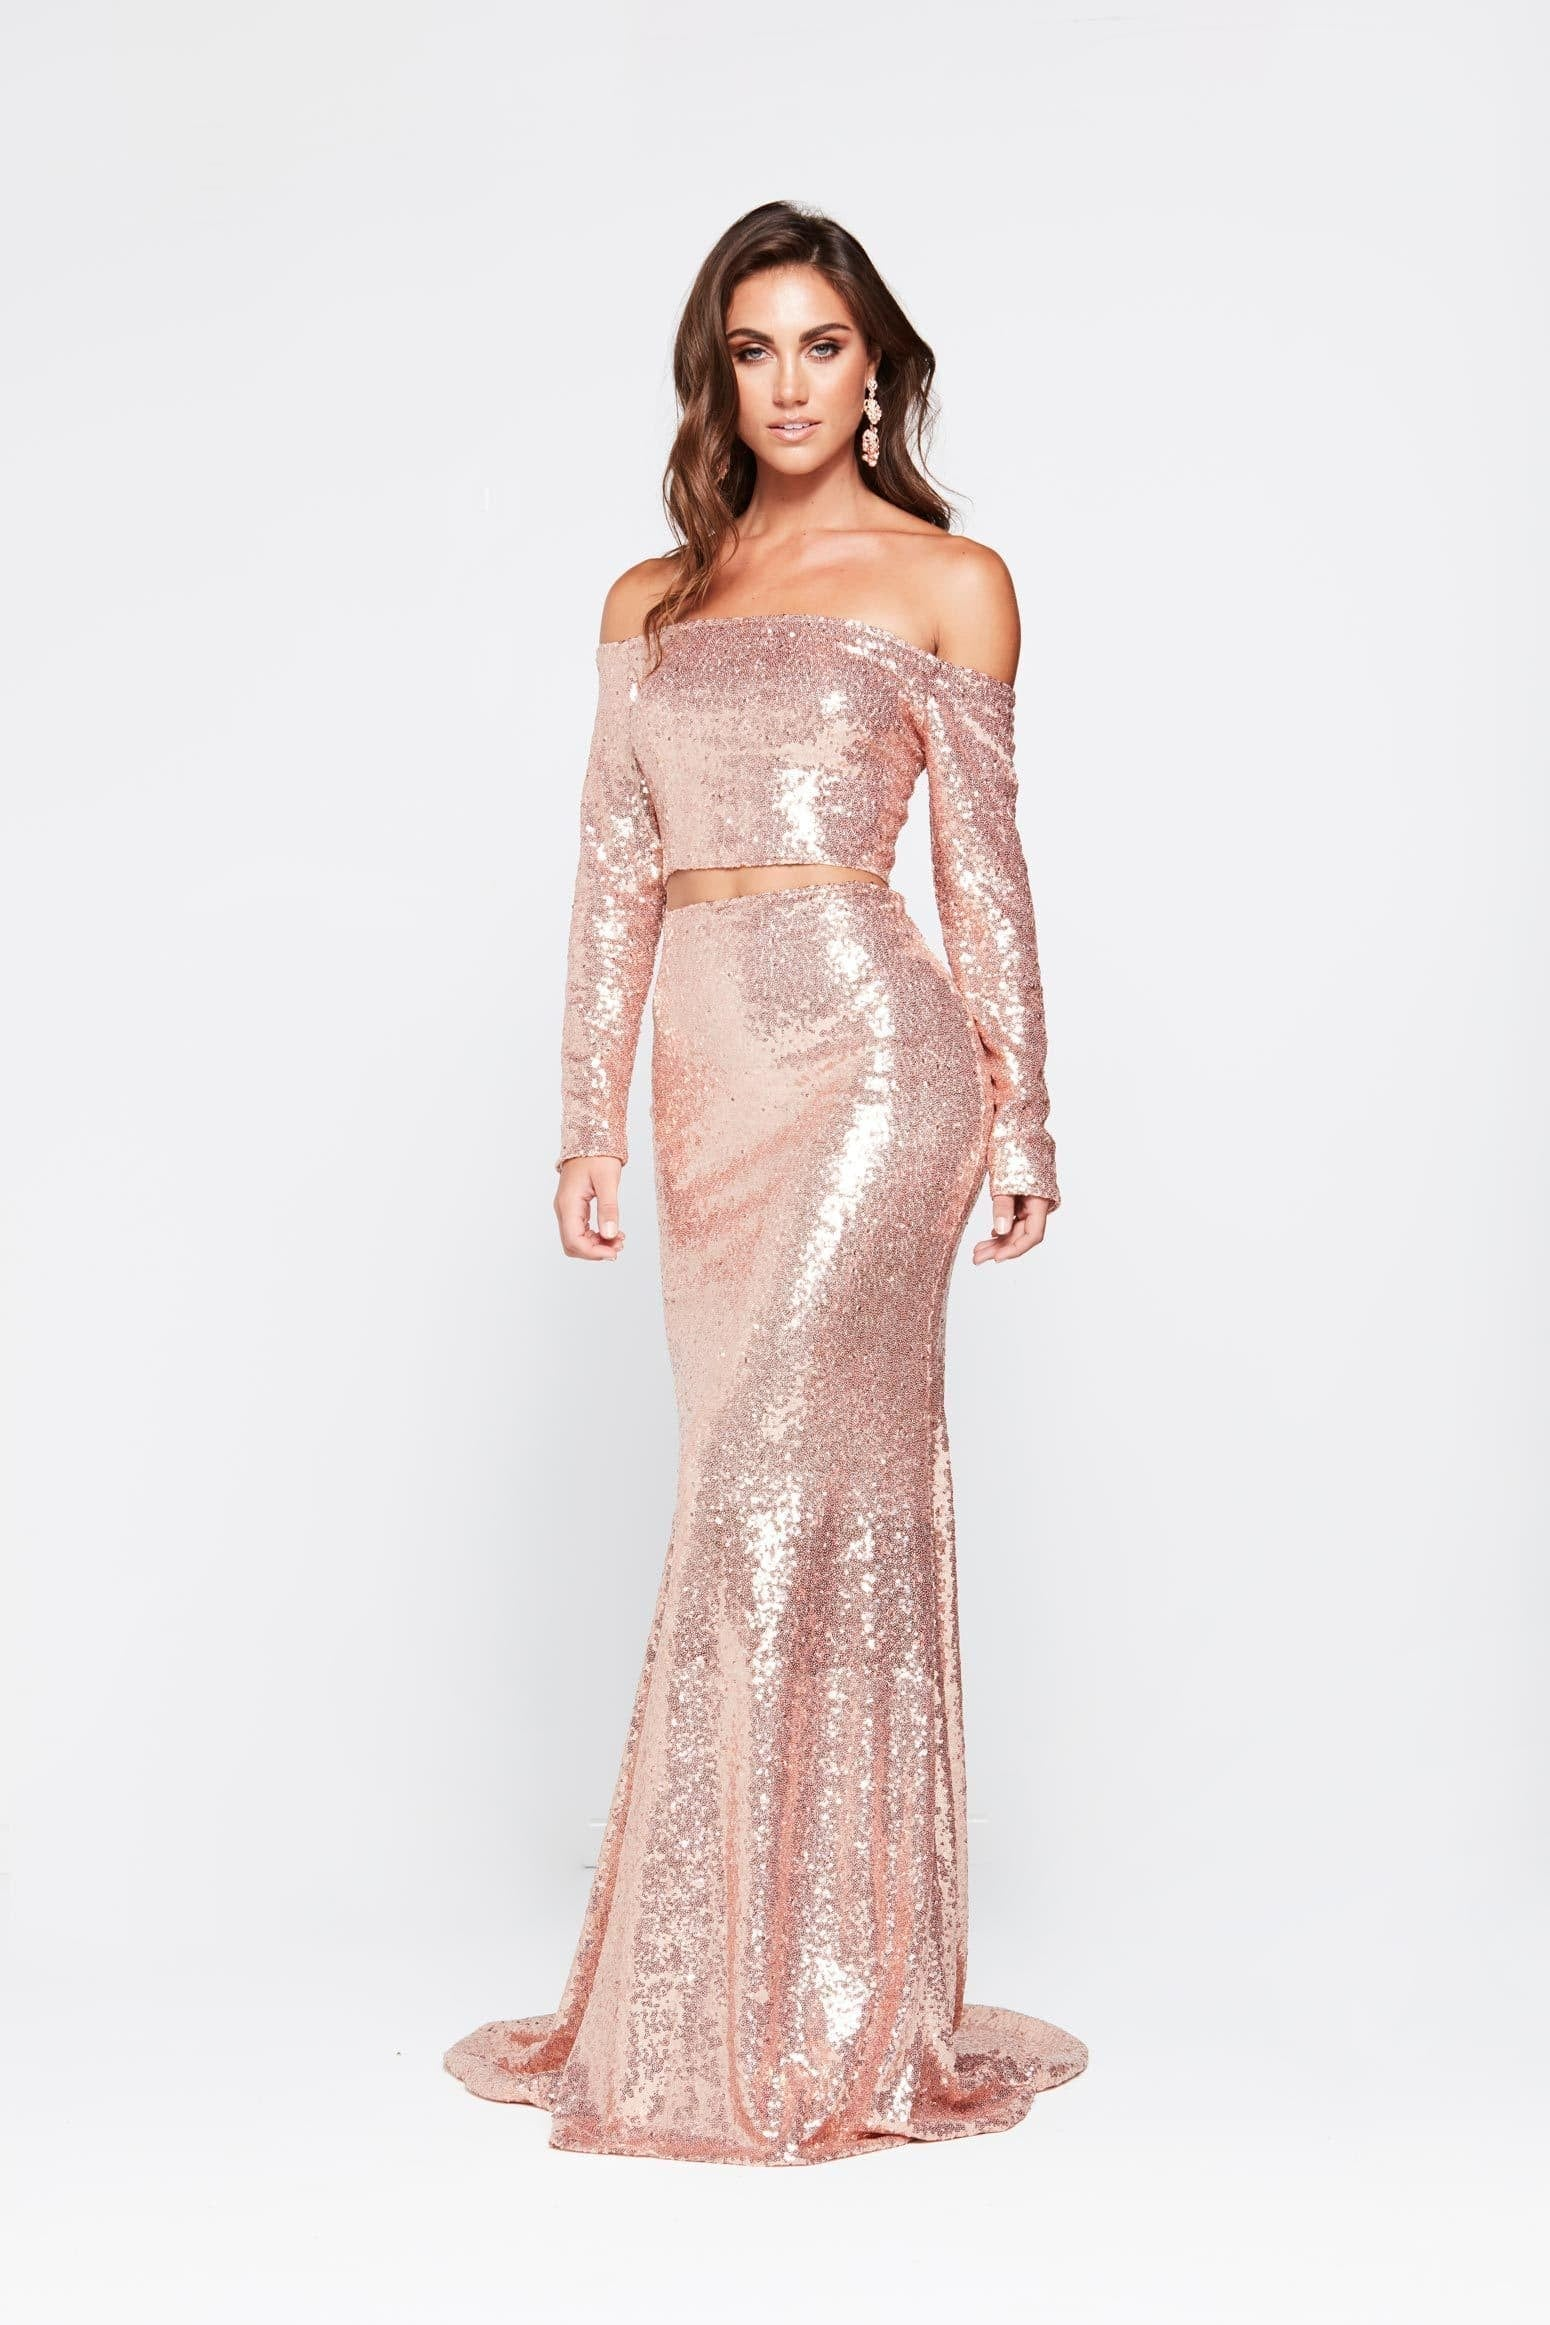 A&N Nadia - Rose Gold Sequin Two Piece Gown with Off Shoulder Sleeves